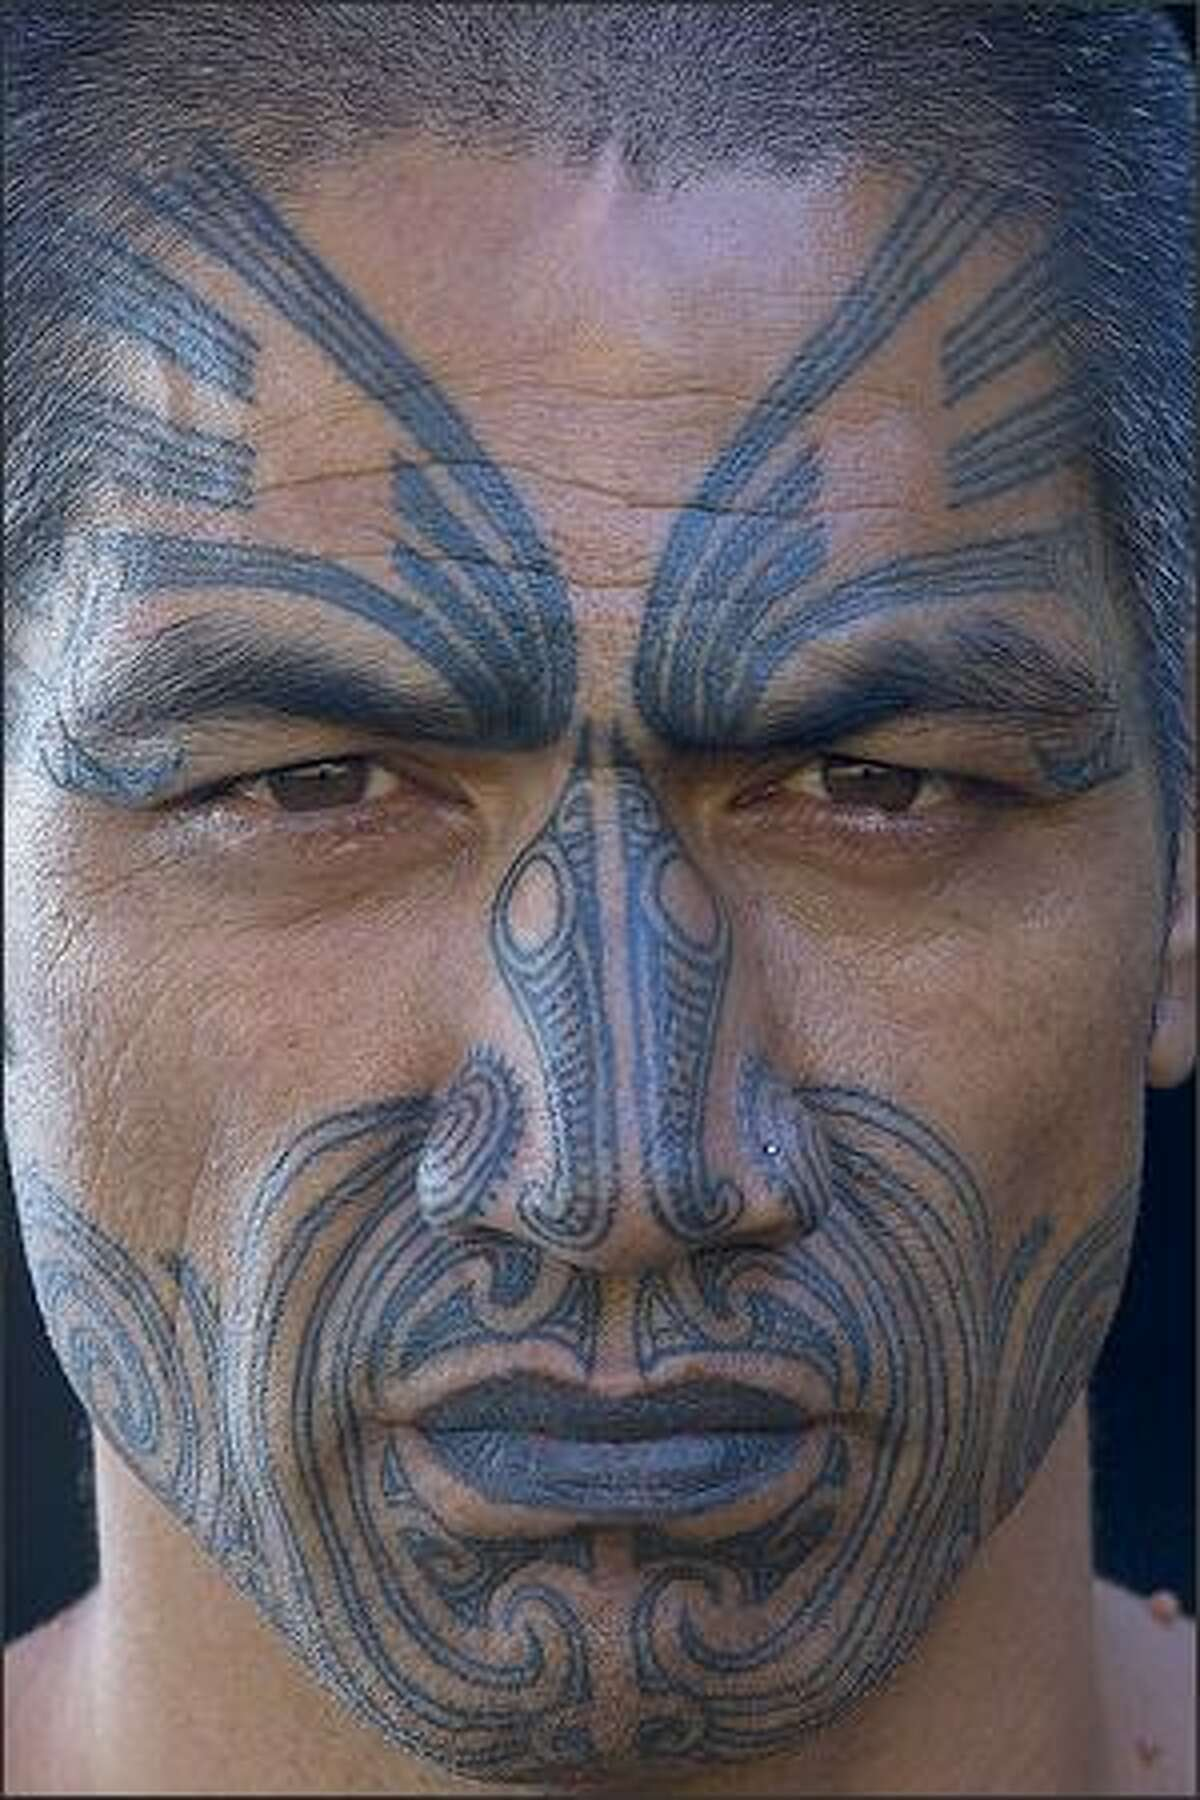 Art Wolfe's photo of a man with a traditional tattoo s in New Zealand from the TV series